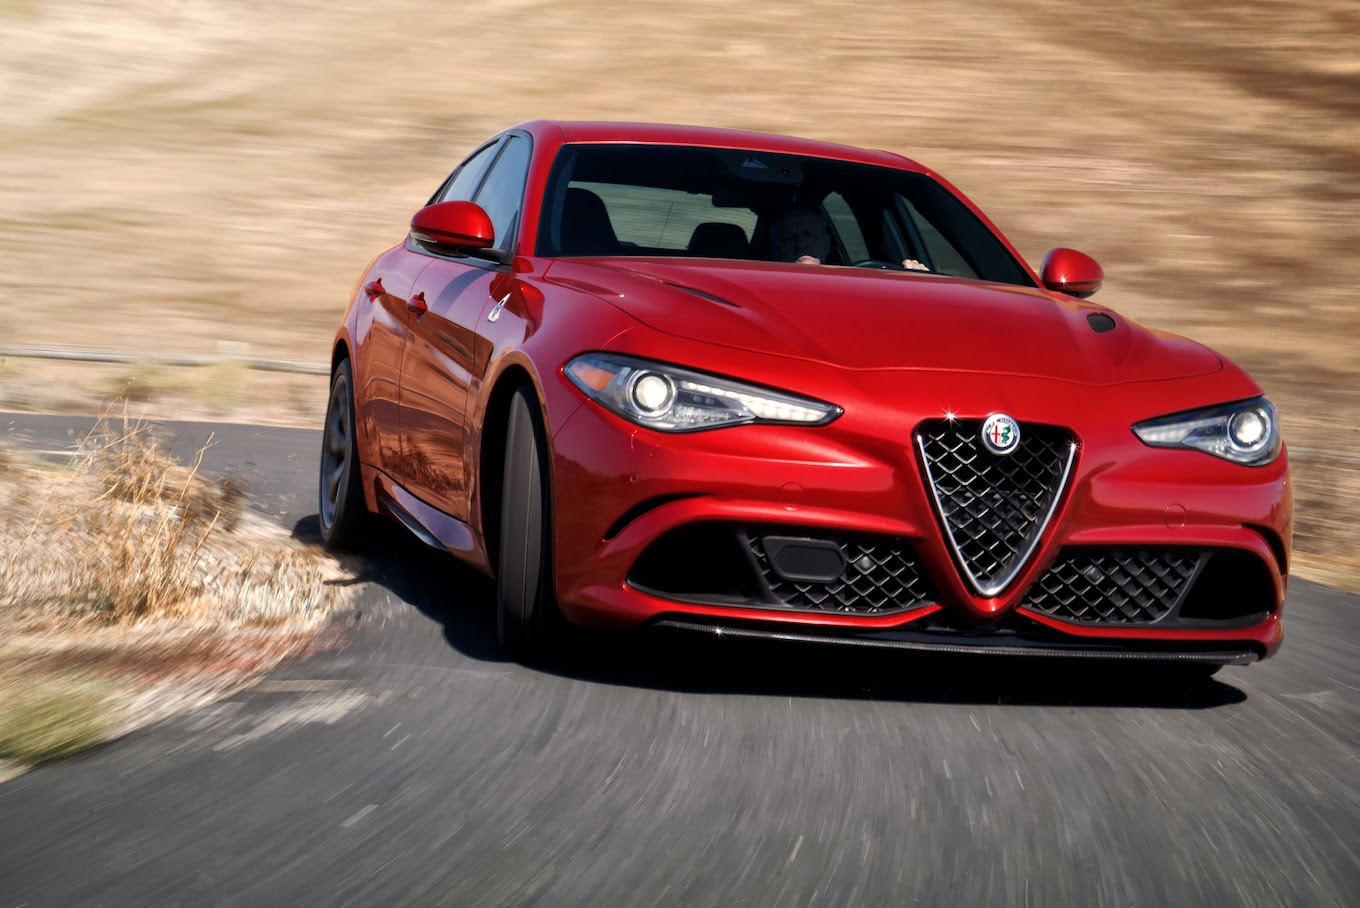 Alfa Romeo Giulia, Giulia Quadrifoglio Pricing Announced